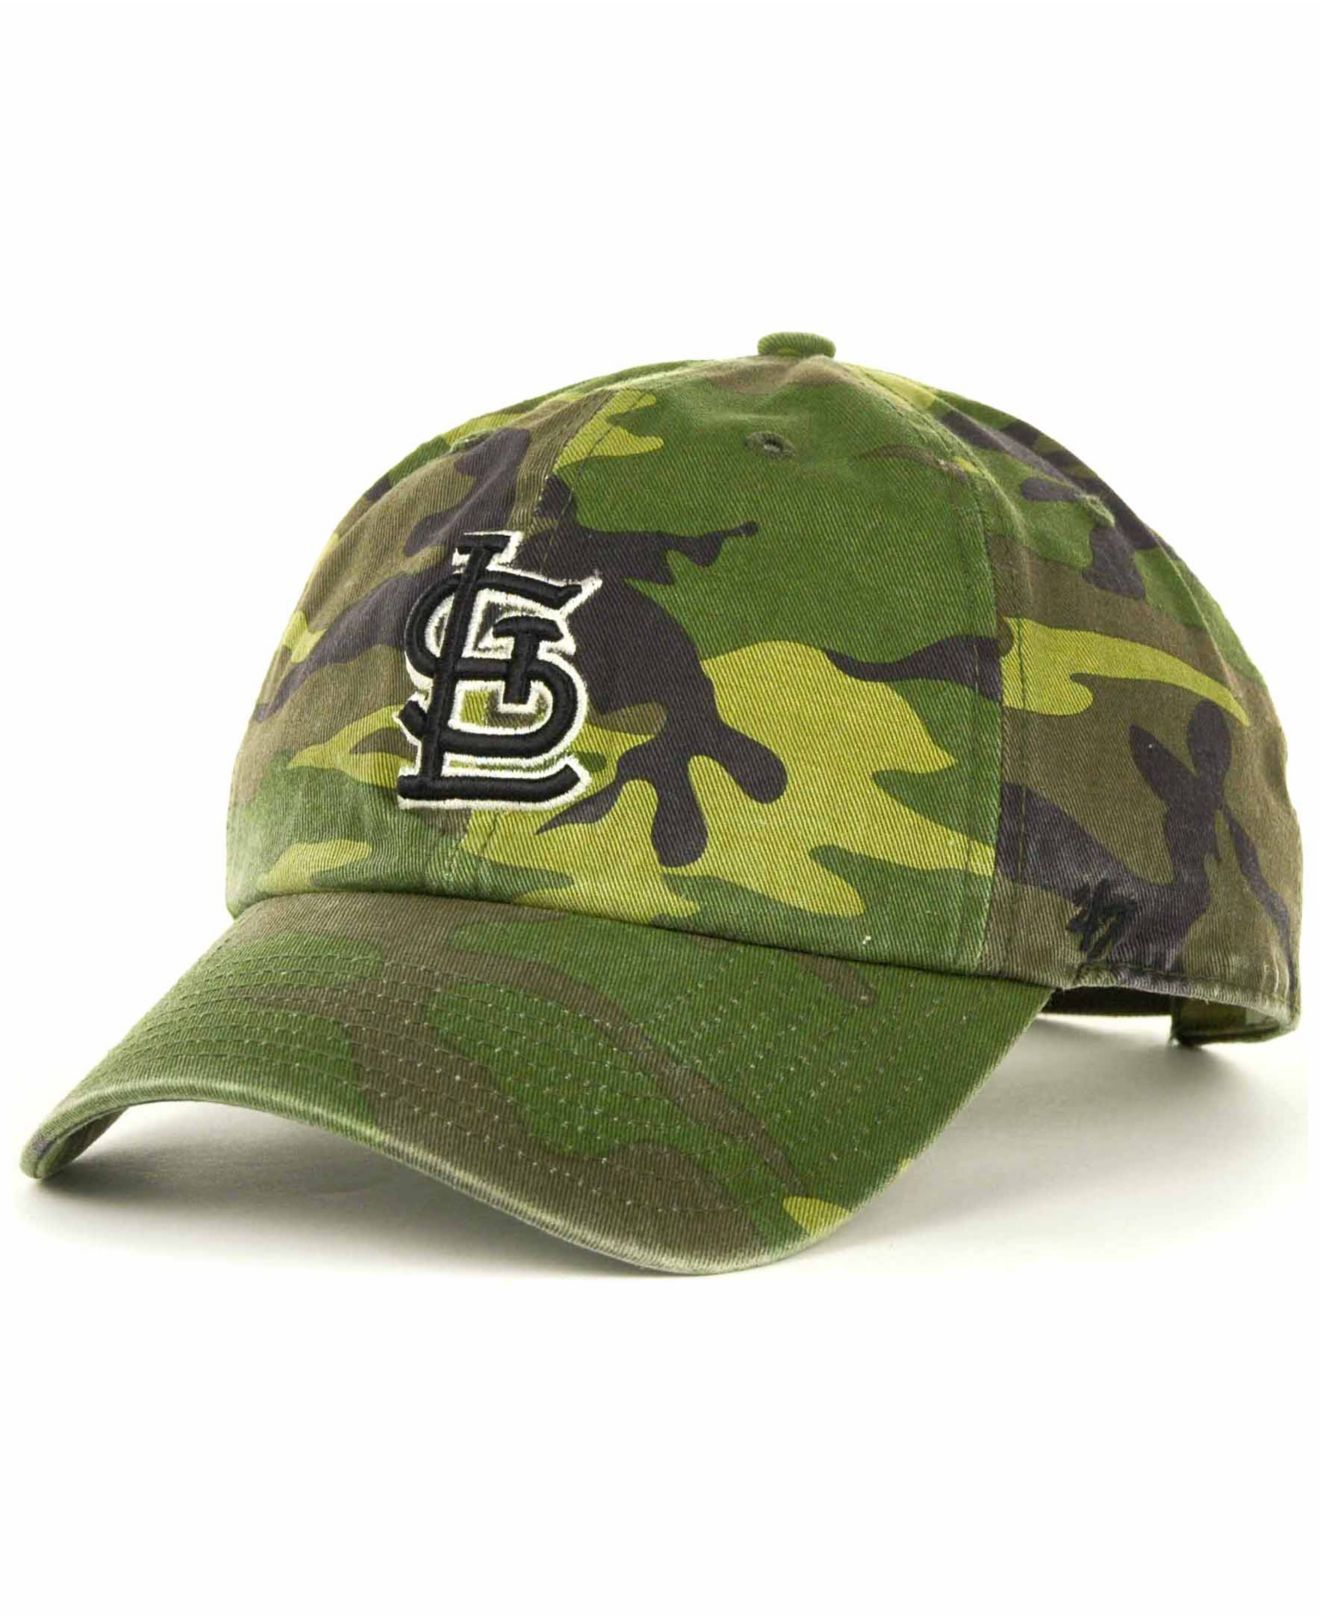 newest ae09f 38021 ... free shipping st. louis cardinals new era neo 39thirty flex hat  realtree camo red lyst